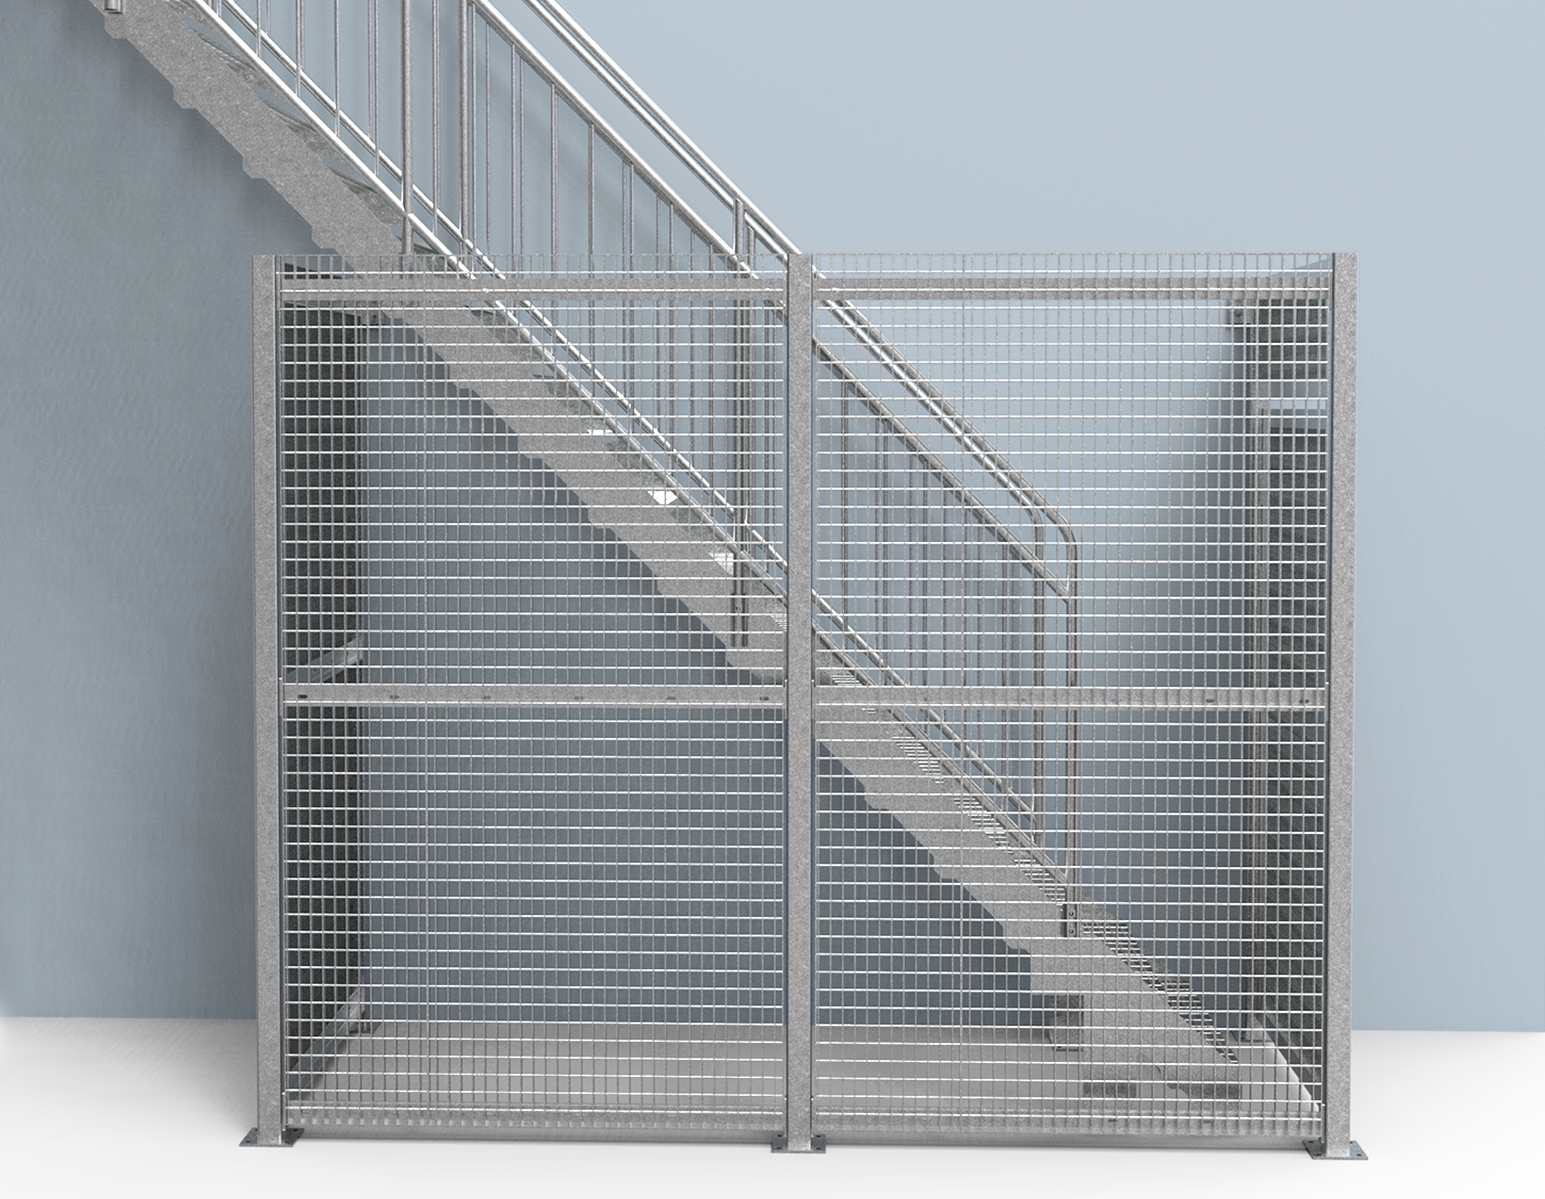 ground connected cage straight staircase